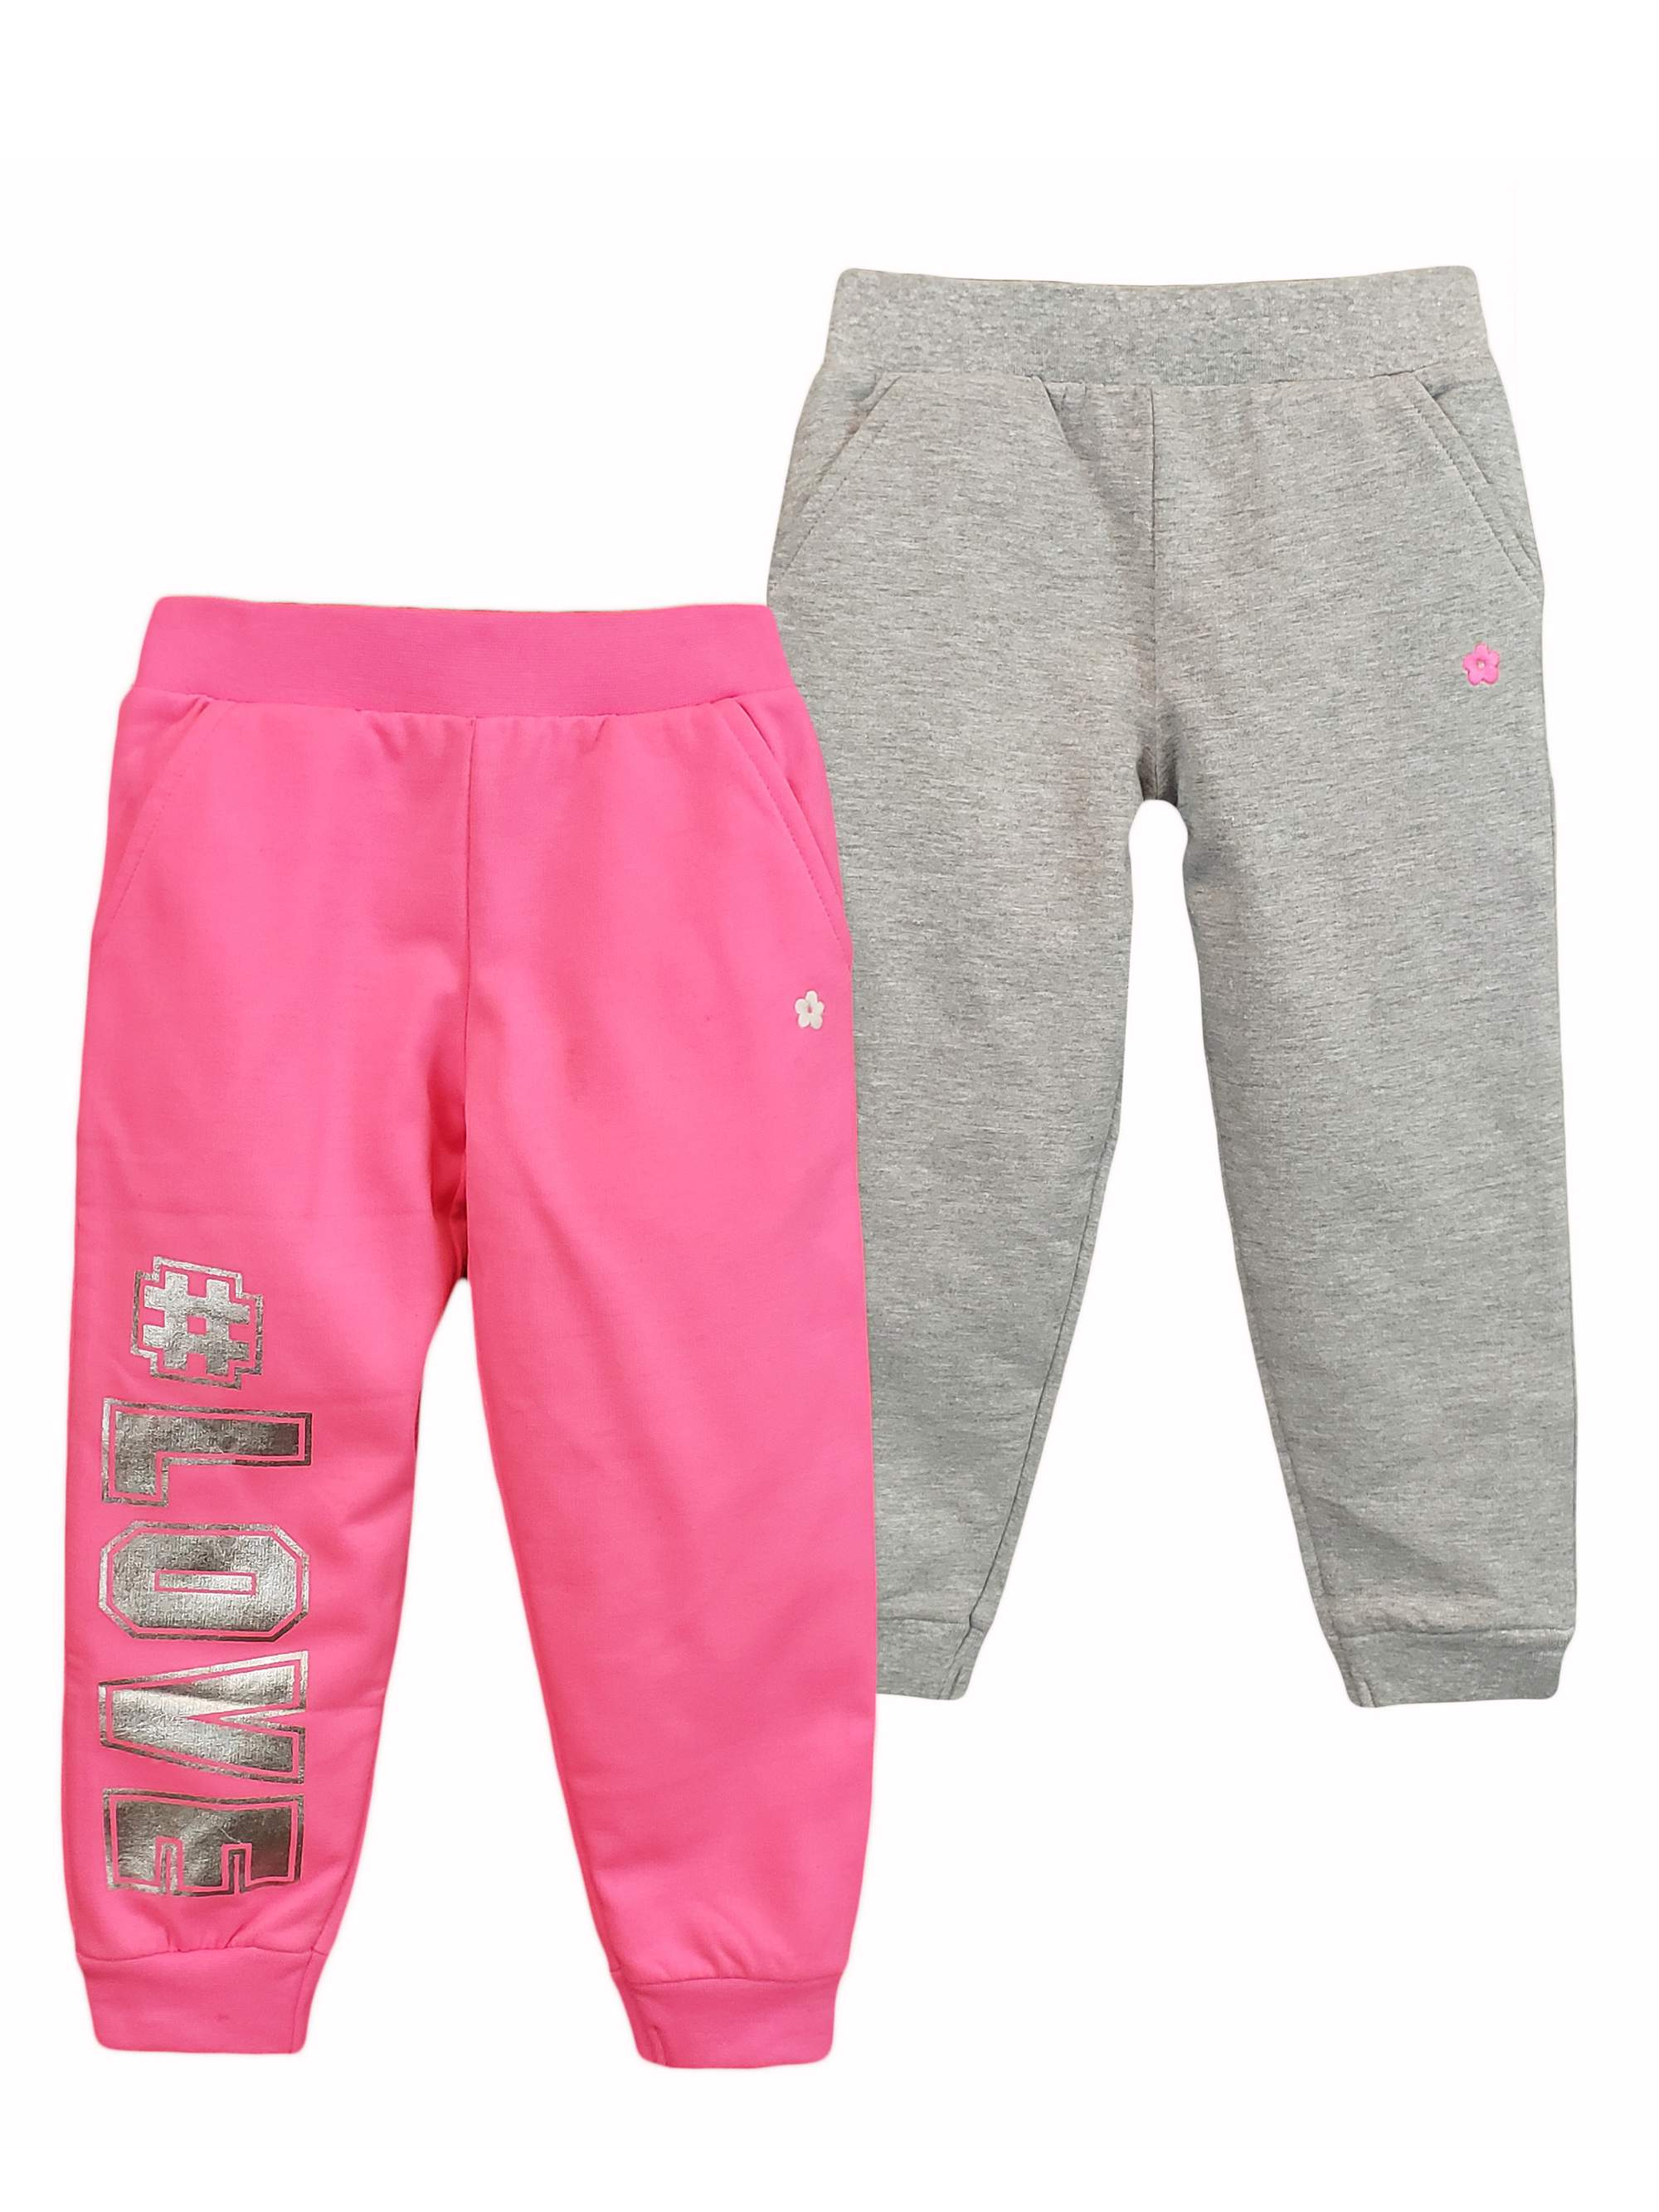 French Terry JoggerPants, 2-pack (Toddler Girls)